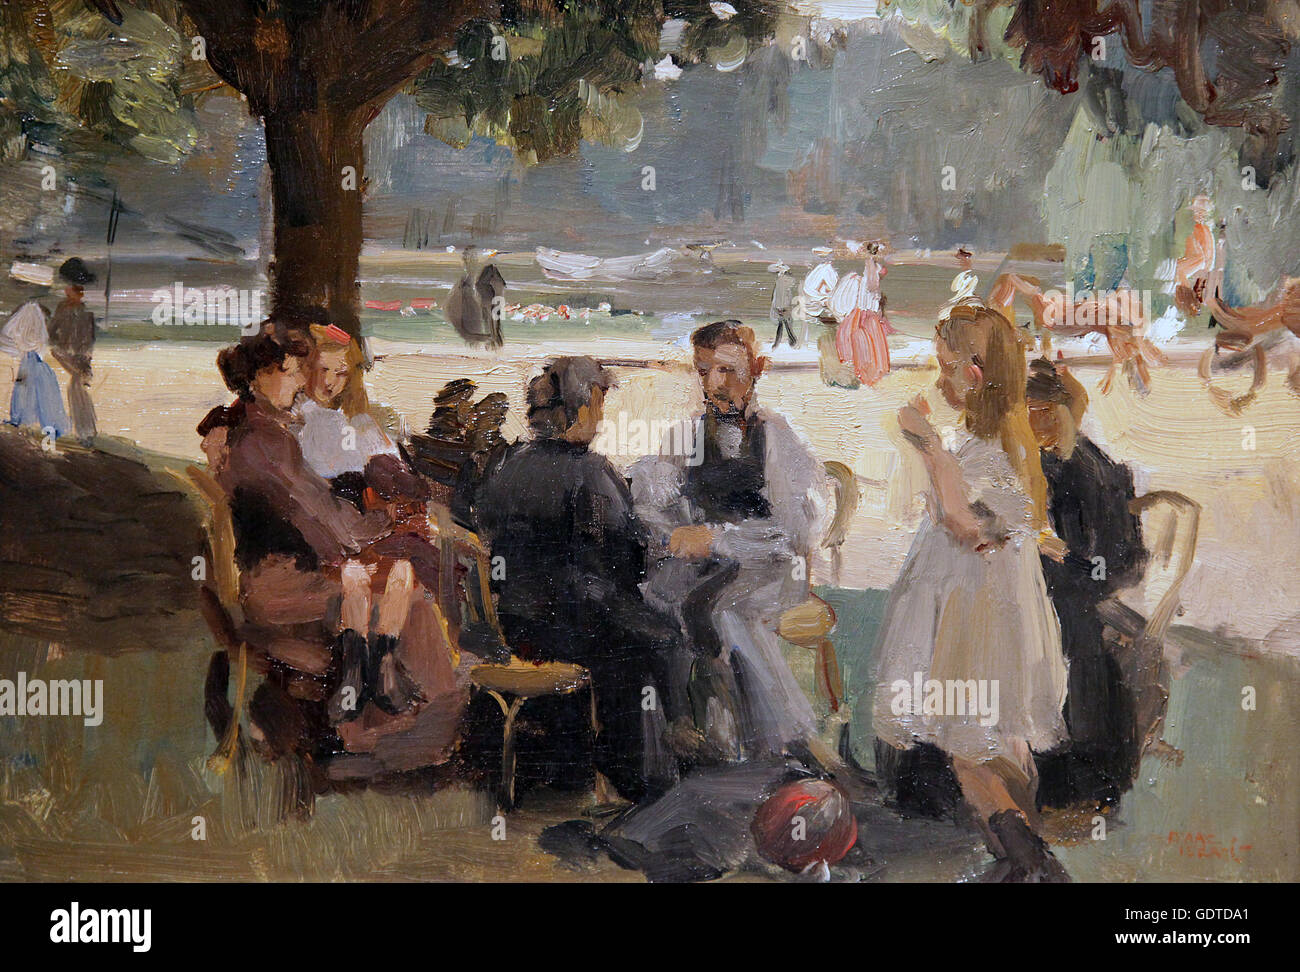 In the Bois de Boulogne near Paris 1906 by Isaac Israels 1865-1934 - Stock Image